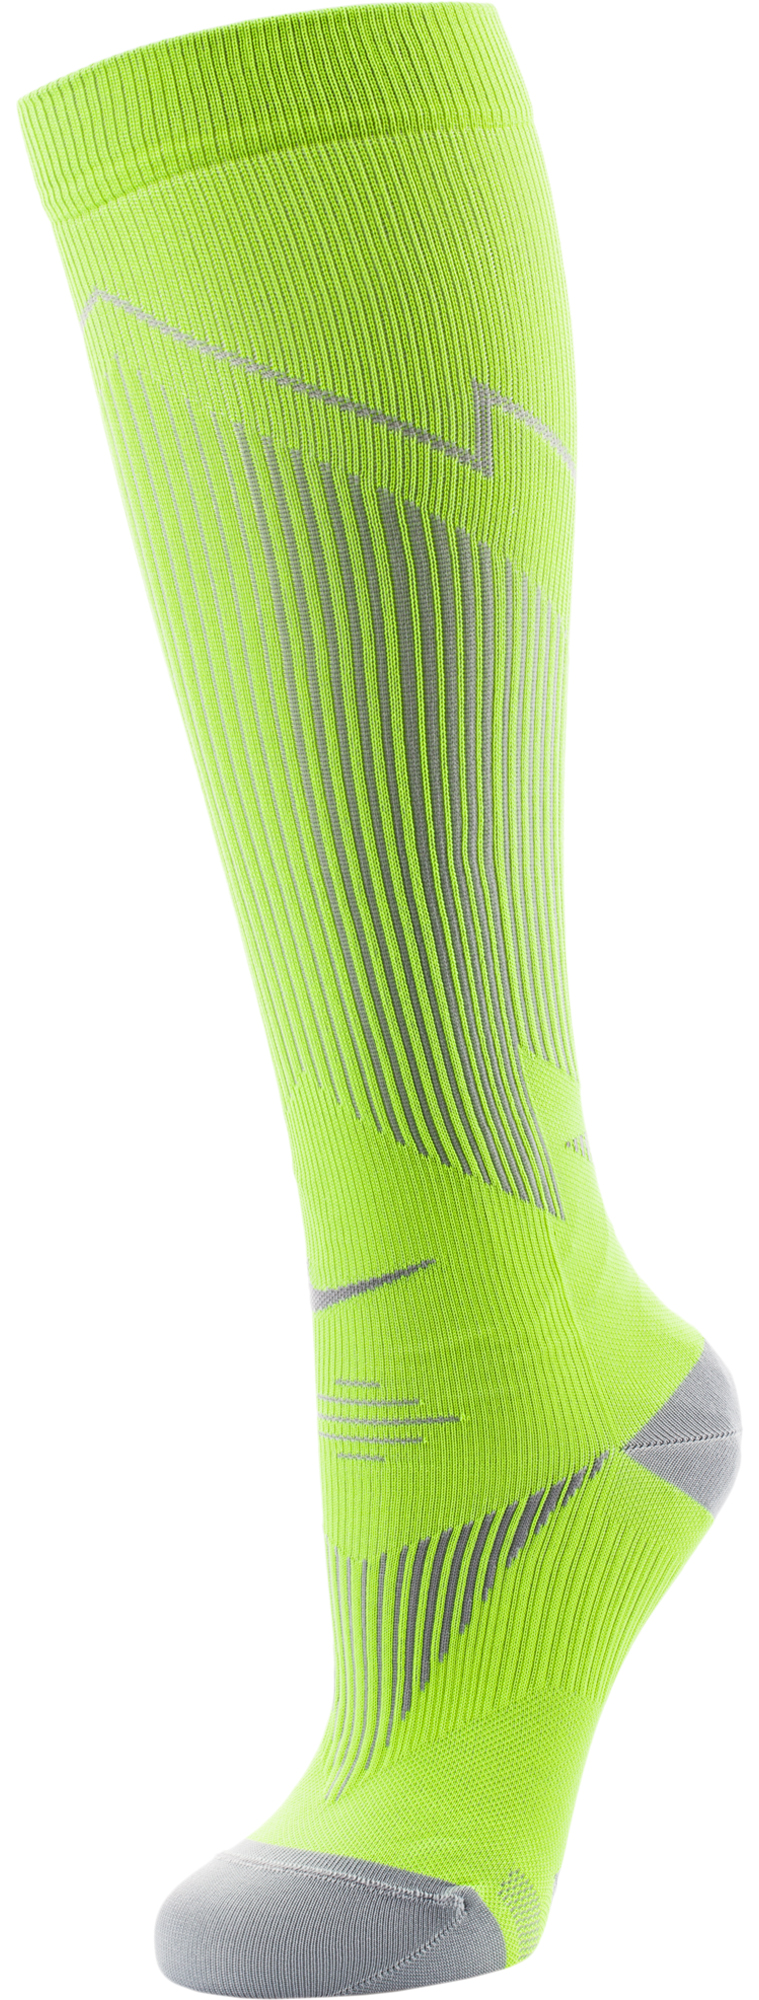 Nike Гольфы мужские Nike Elite Compression Over-the-Calf, 1 пара гольфы nike гольфы nike women s elt high intens